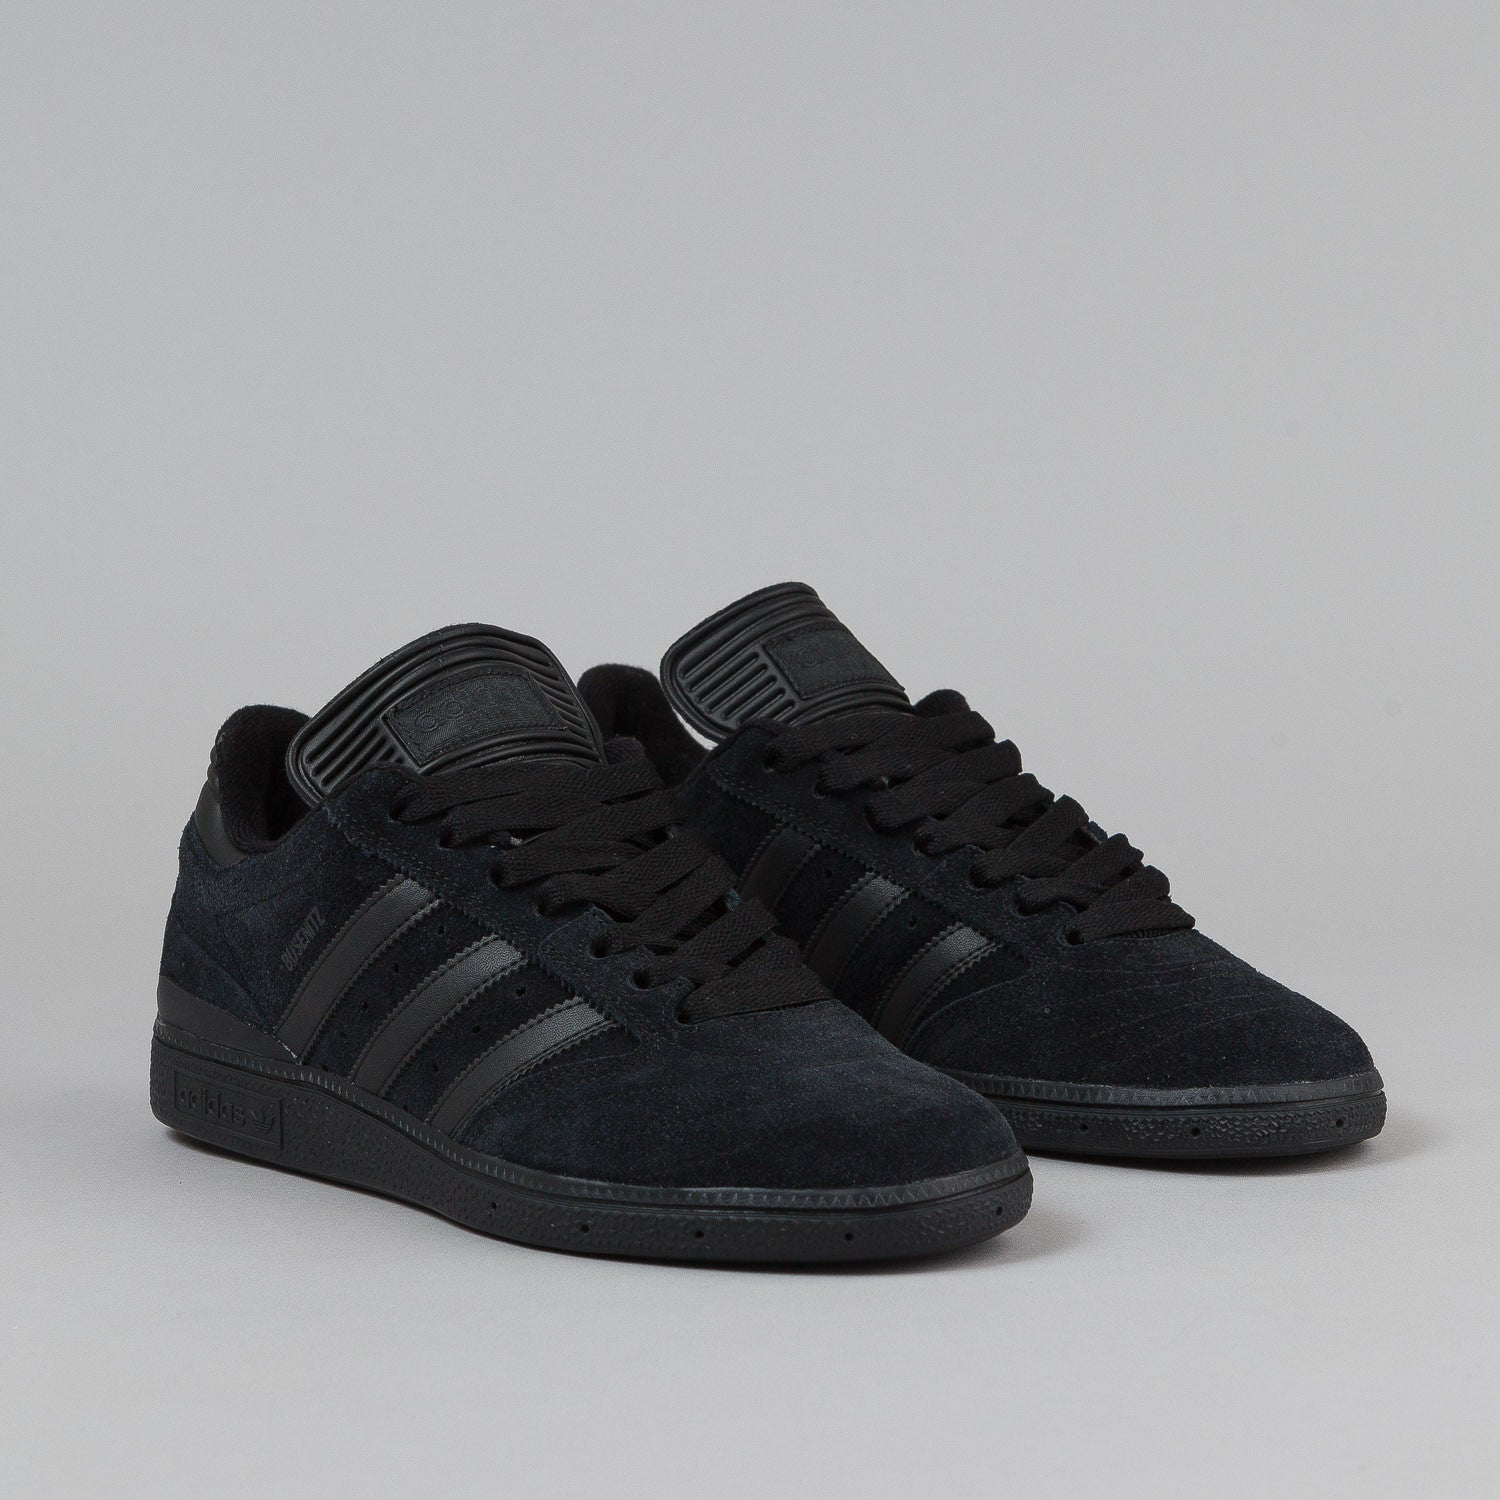 Adidas Busenitz Shoes - Black / Black / Black